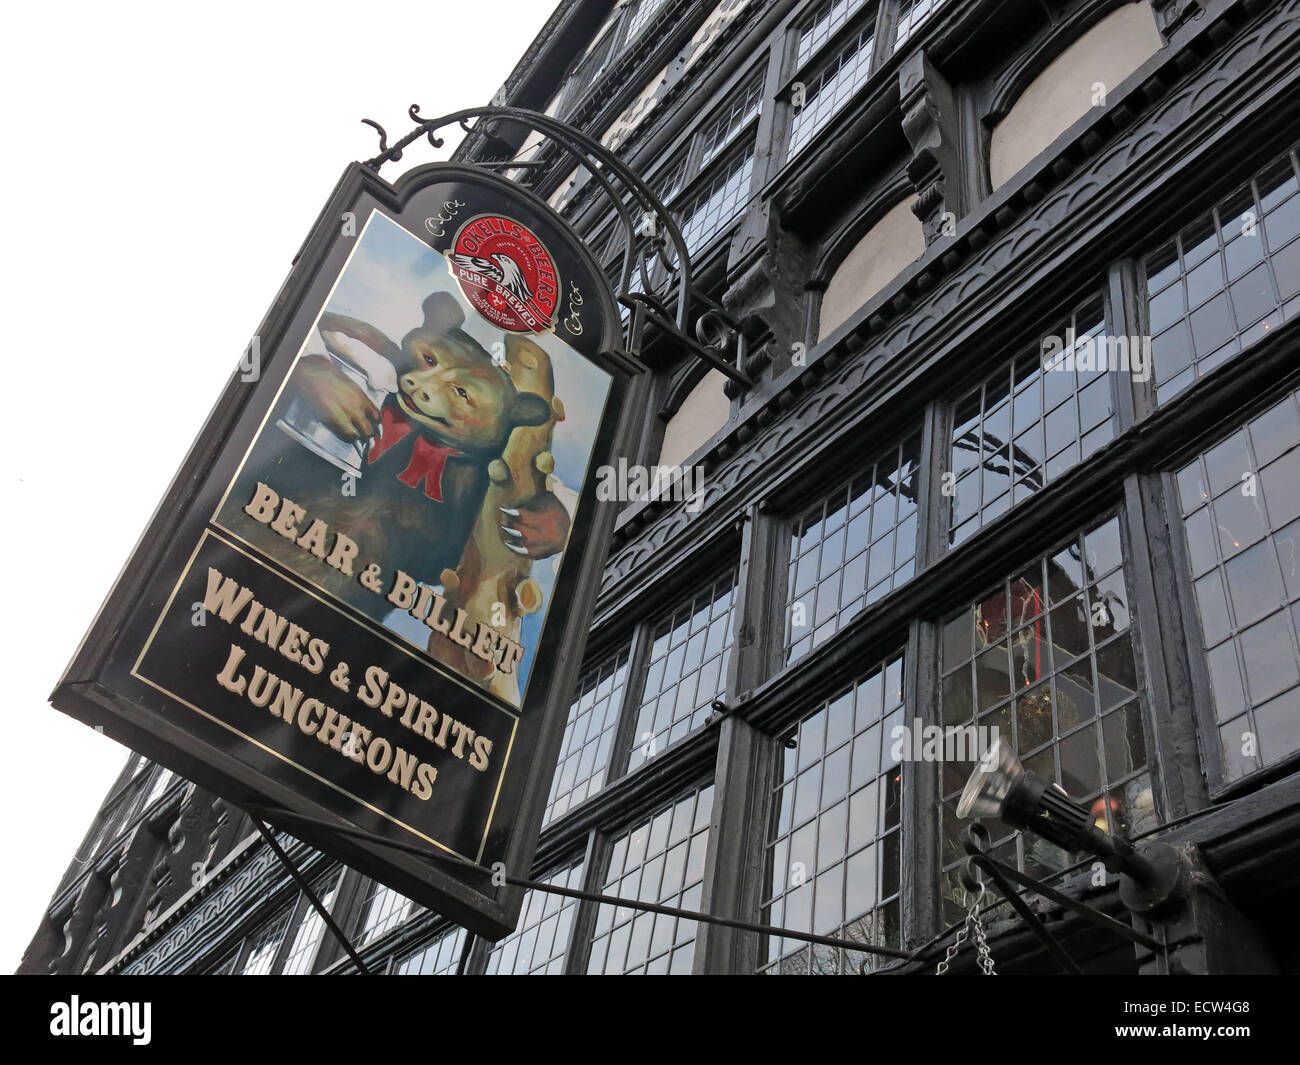 The Bear & Billet Pub,Chester City,Cheshire,England,UK - Stock Image